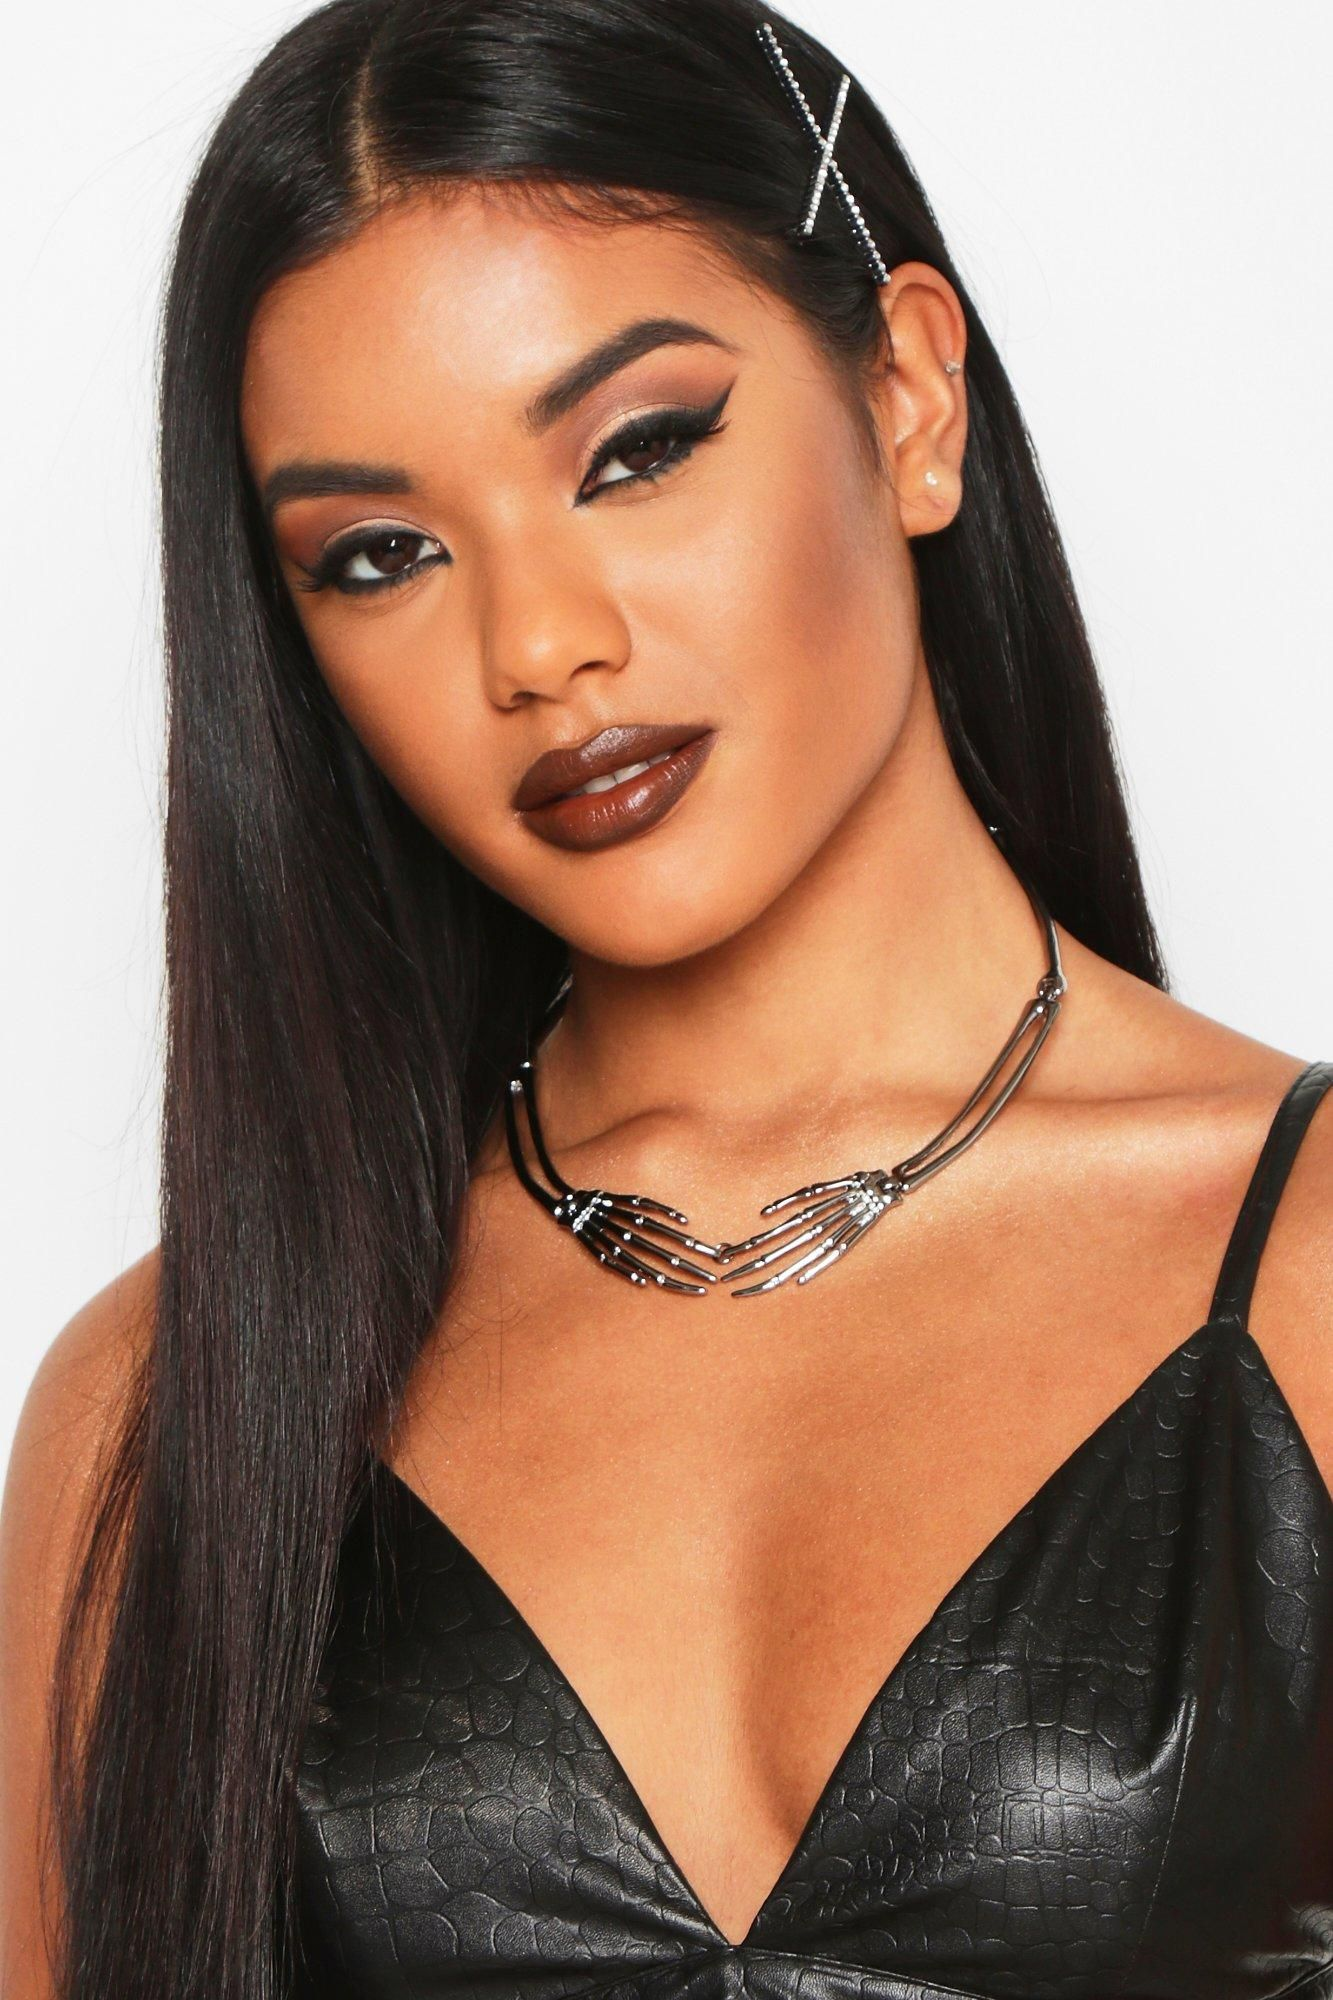 2020 New Straight Wigs Black Long Hair Human Hair Ponytails For Black Hair Black Bob Wig Lace Front